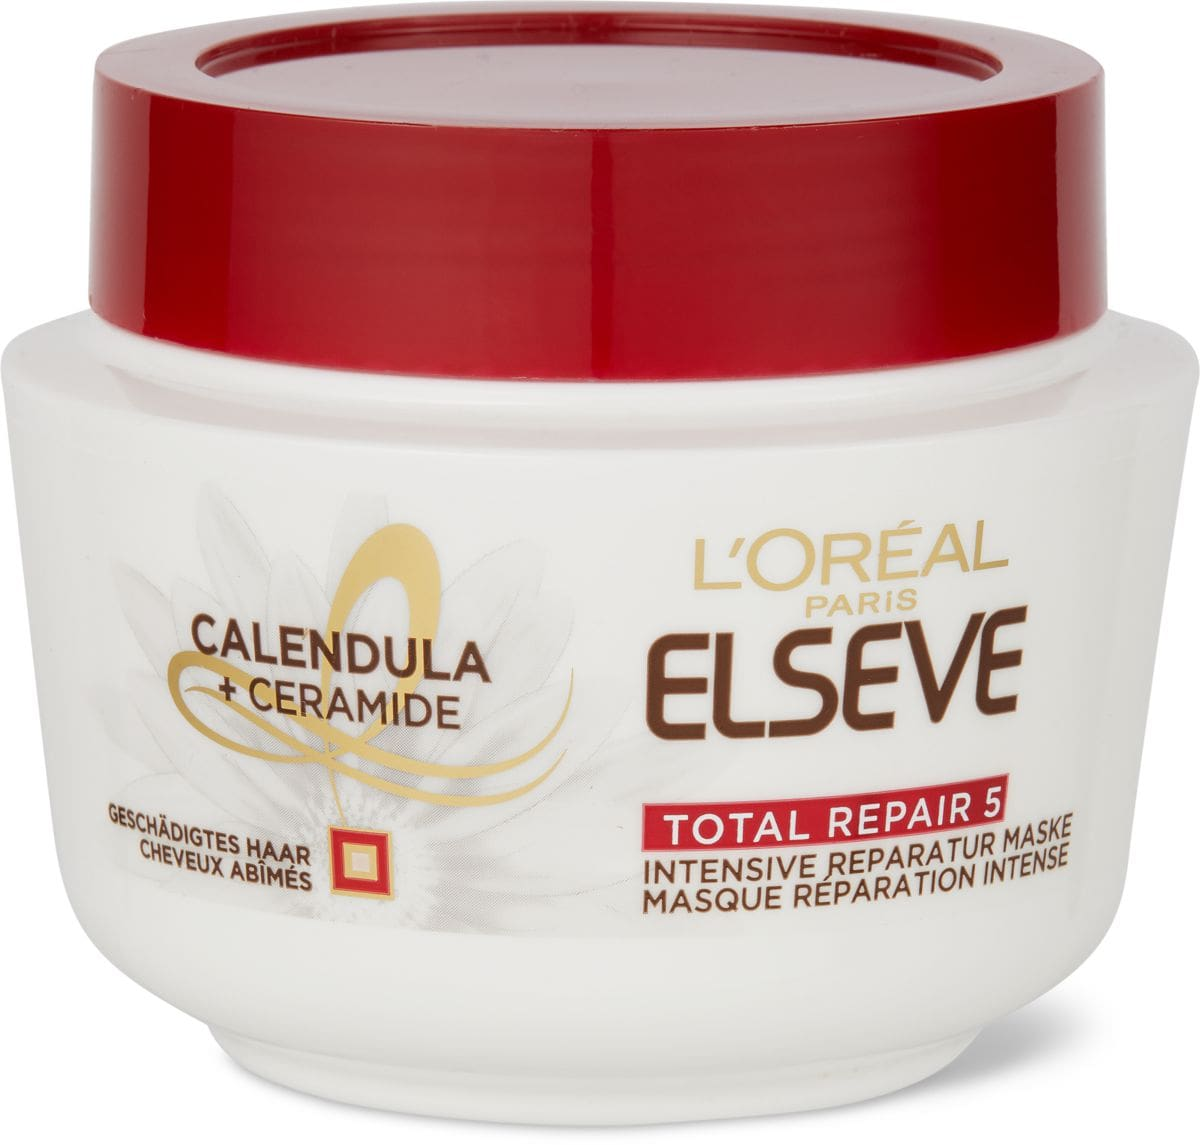 L'Oréal Elseve Maschera Total Repair 5